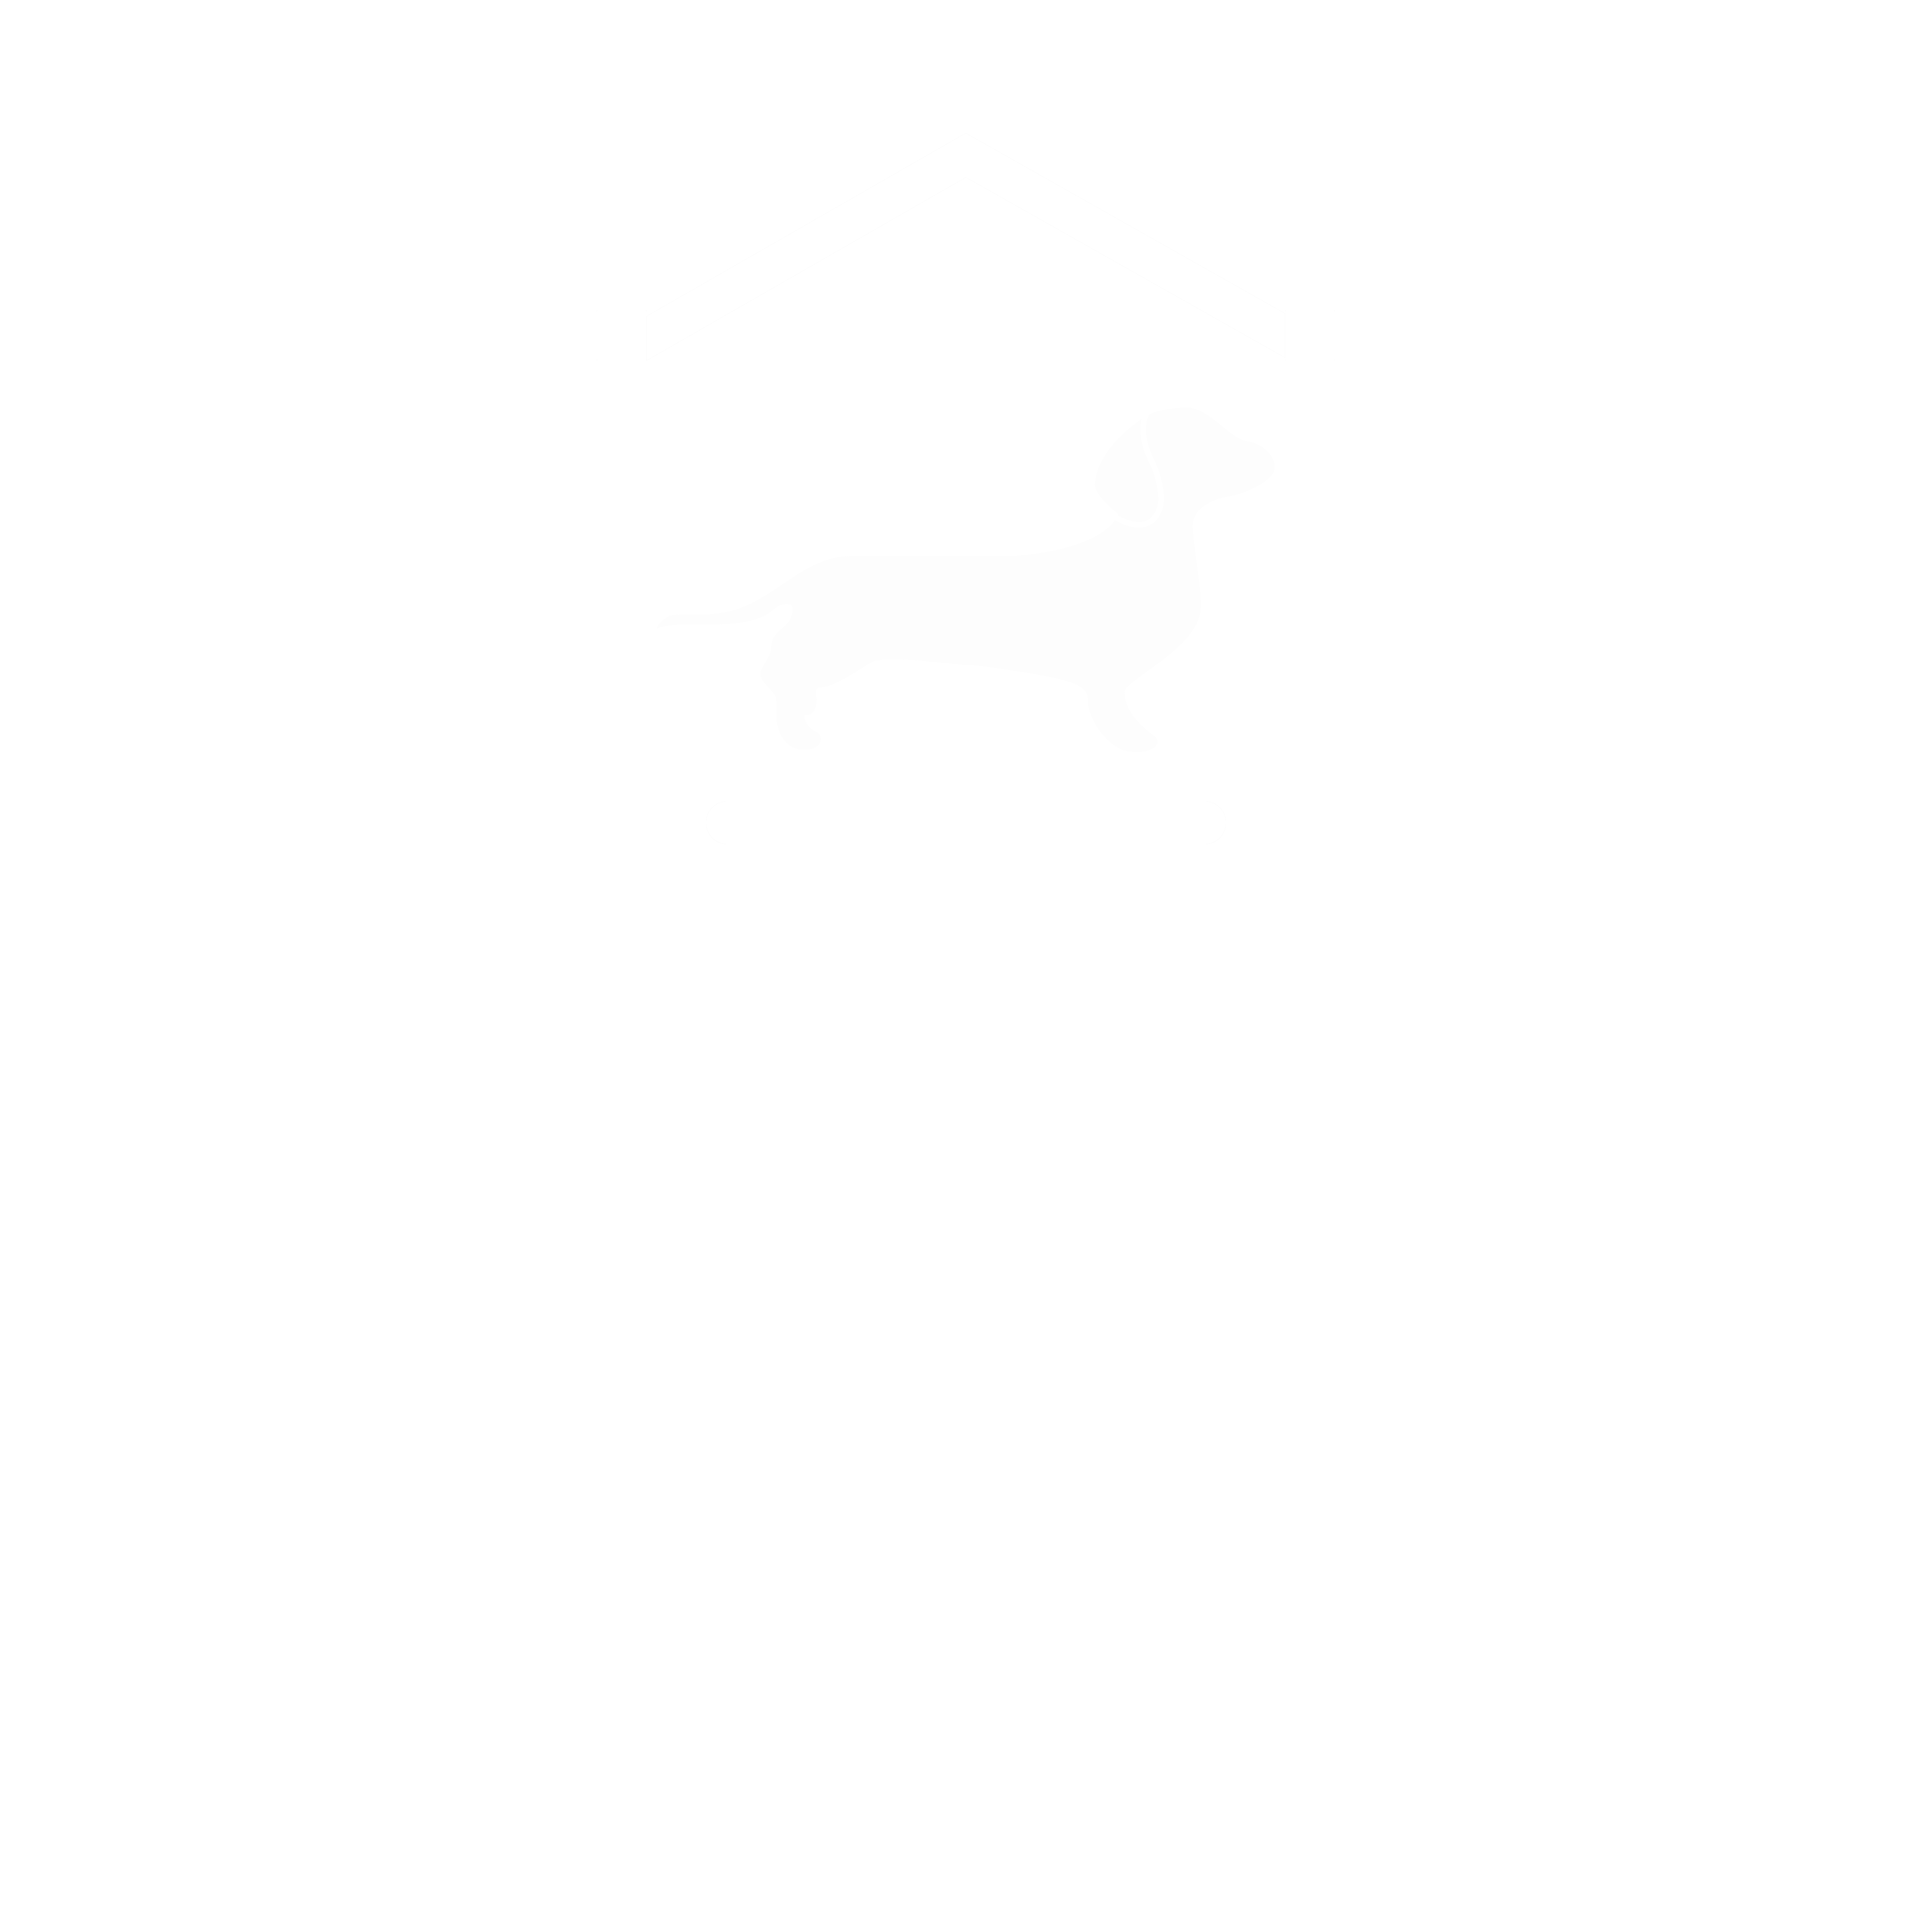 Scott Morreau PA - The Morreau Group